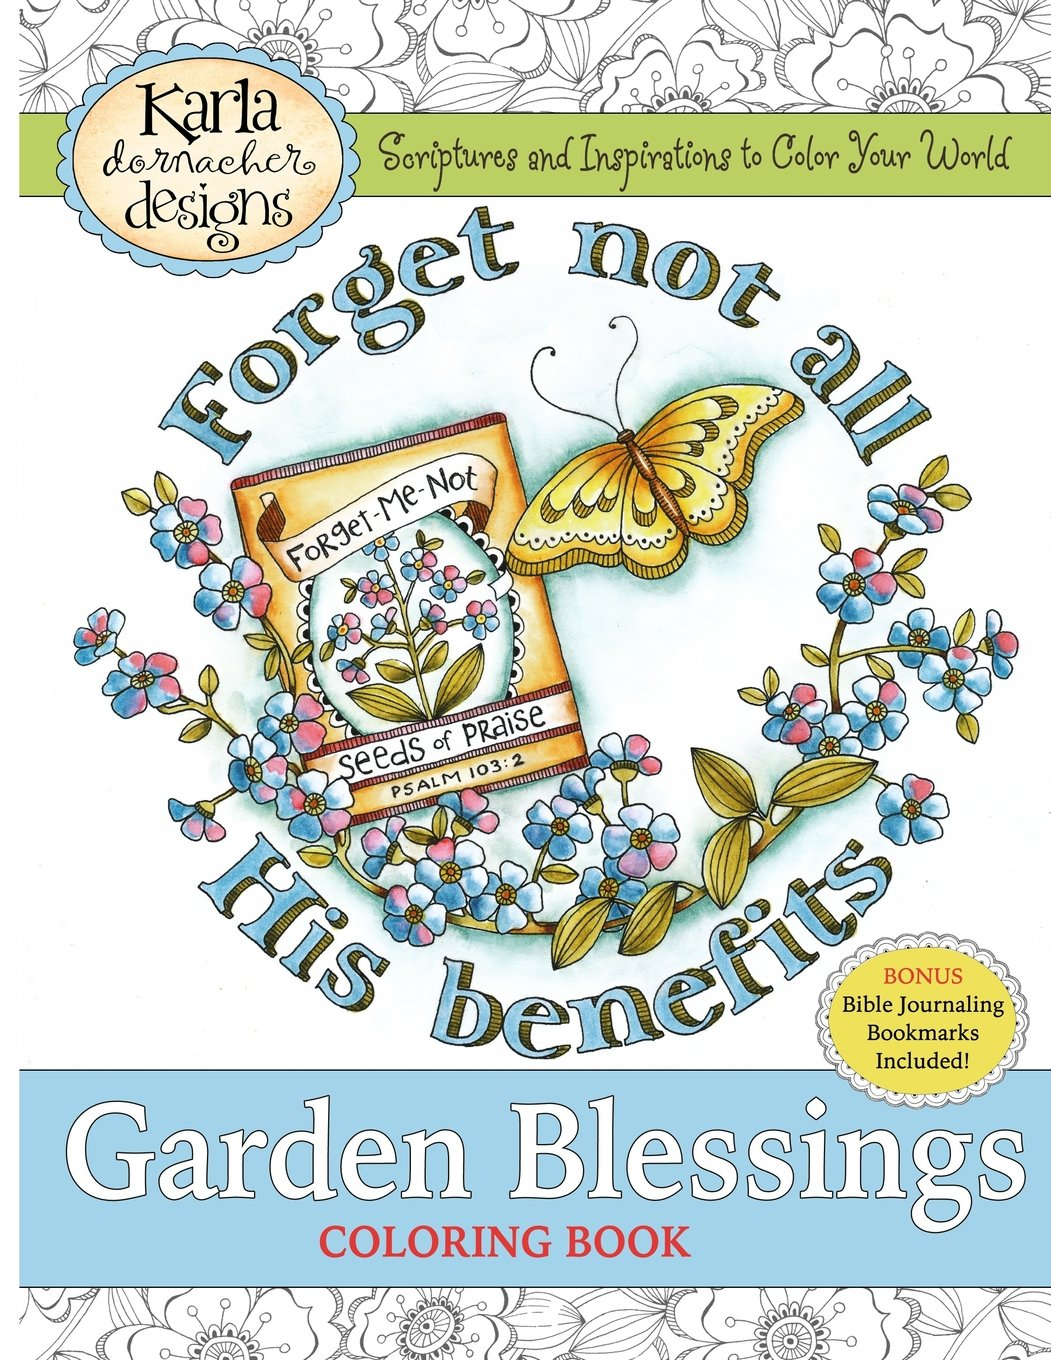 Amazon Garden Blessings Scriptures And Inspirations To Color Your World 9781516978076 Karla Dornacher Books